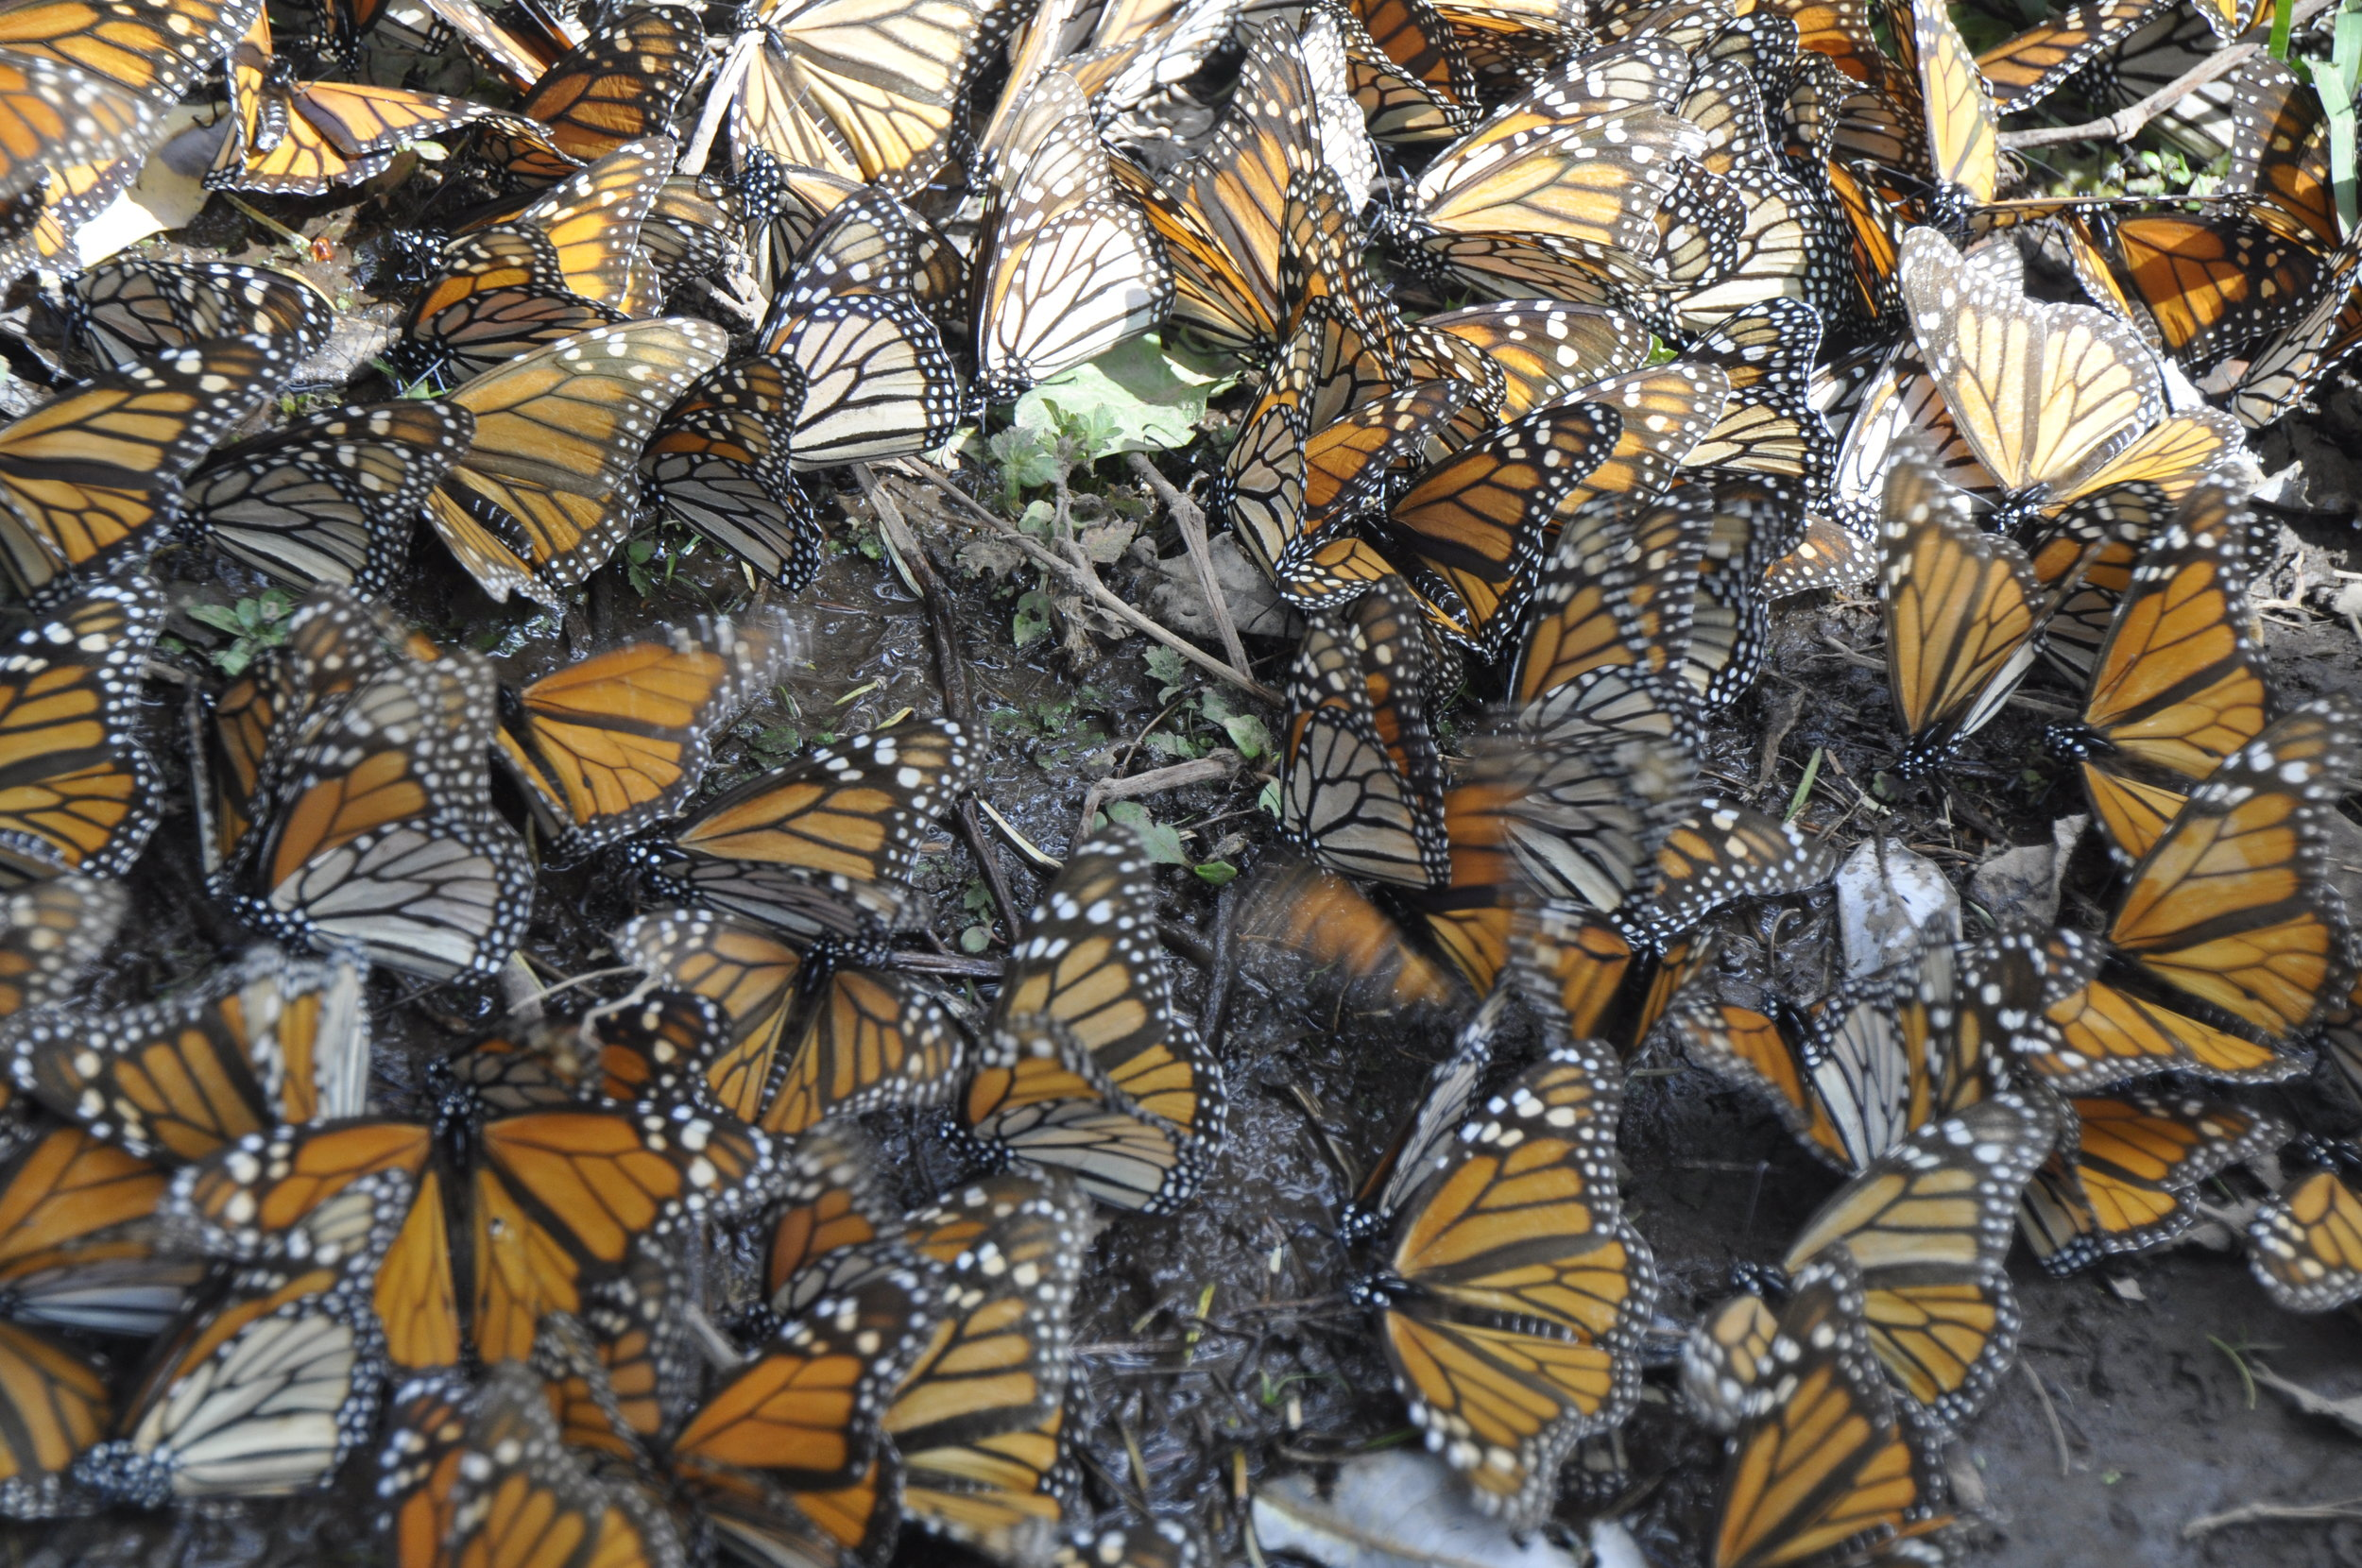 Monarchs in Rosario Sanctuary, Mexico. Photo by Brenna Wiesner.  Download